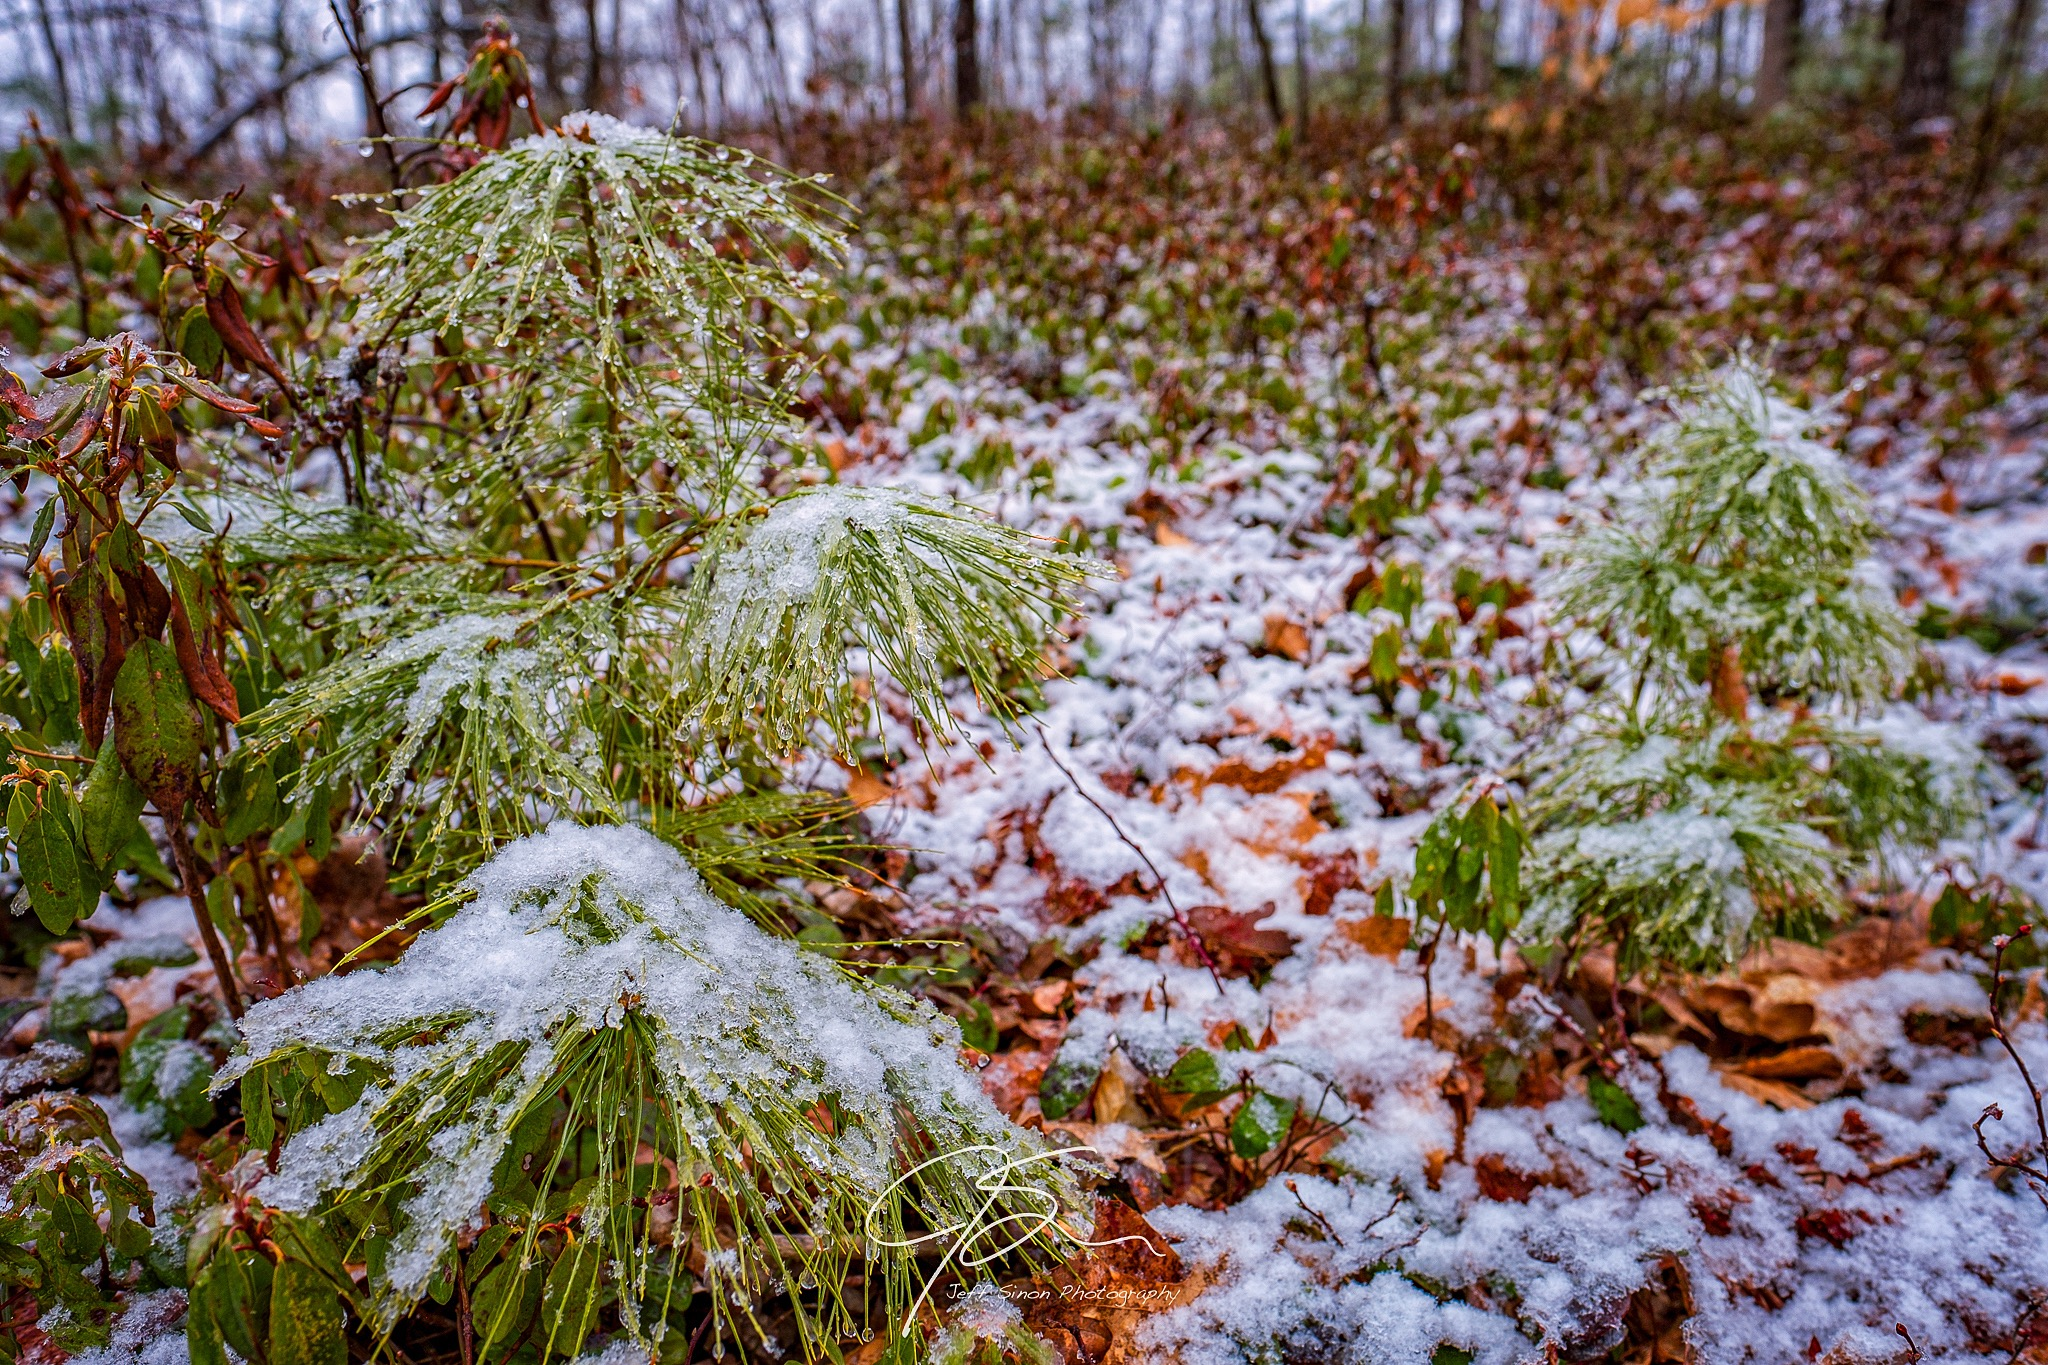 new wet spring snow on the forest floor with small pine trees.